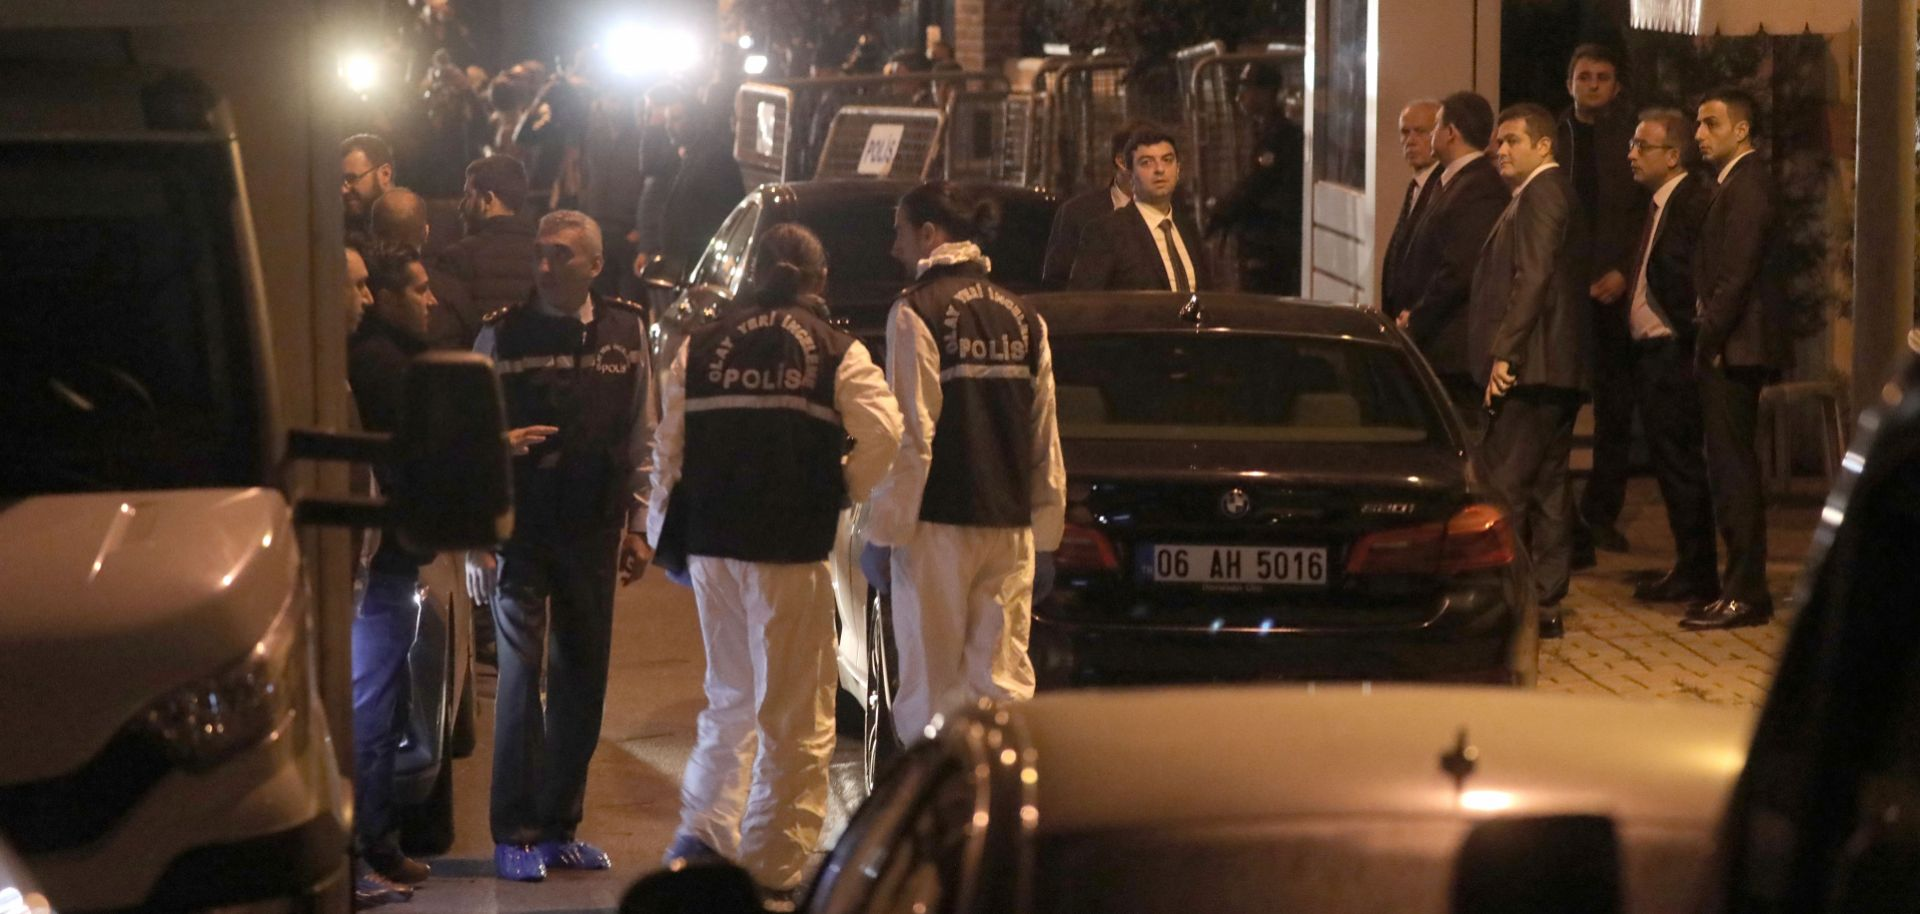 Turkish police enter the Saudi Arabian Consulate in Istanbul on Oct. 15 to conduct a search for journalist Jamal Khashoggi, who has been missing since he entered the premises on Oct. 2.